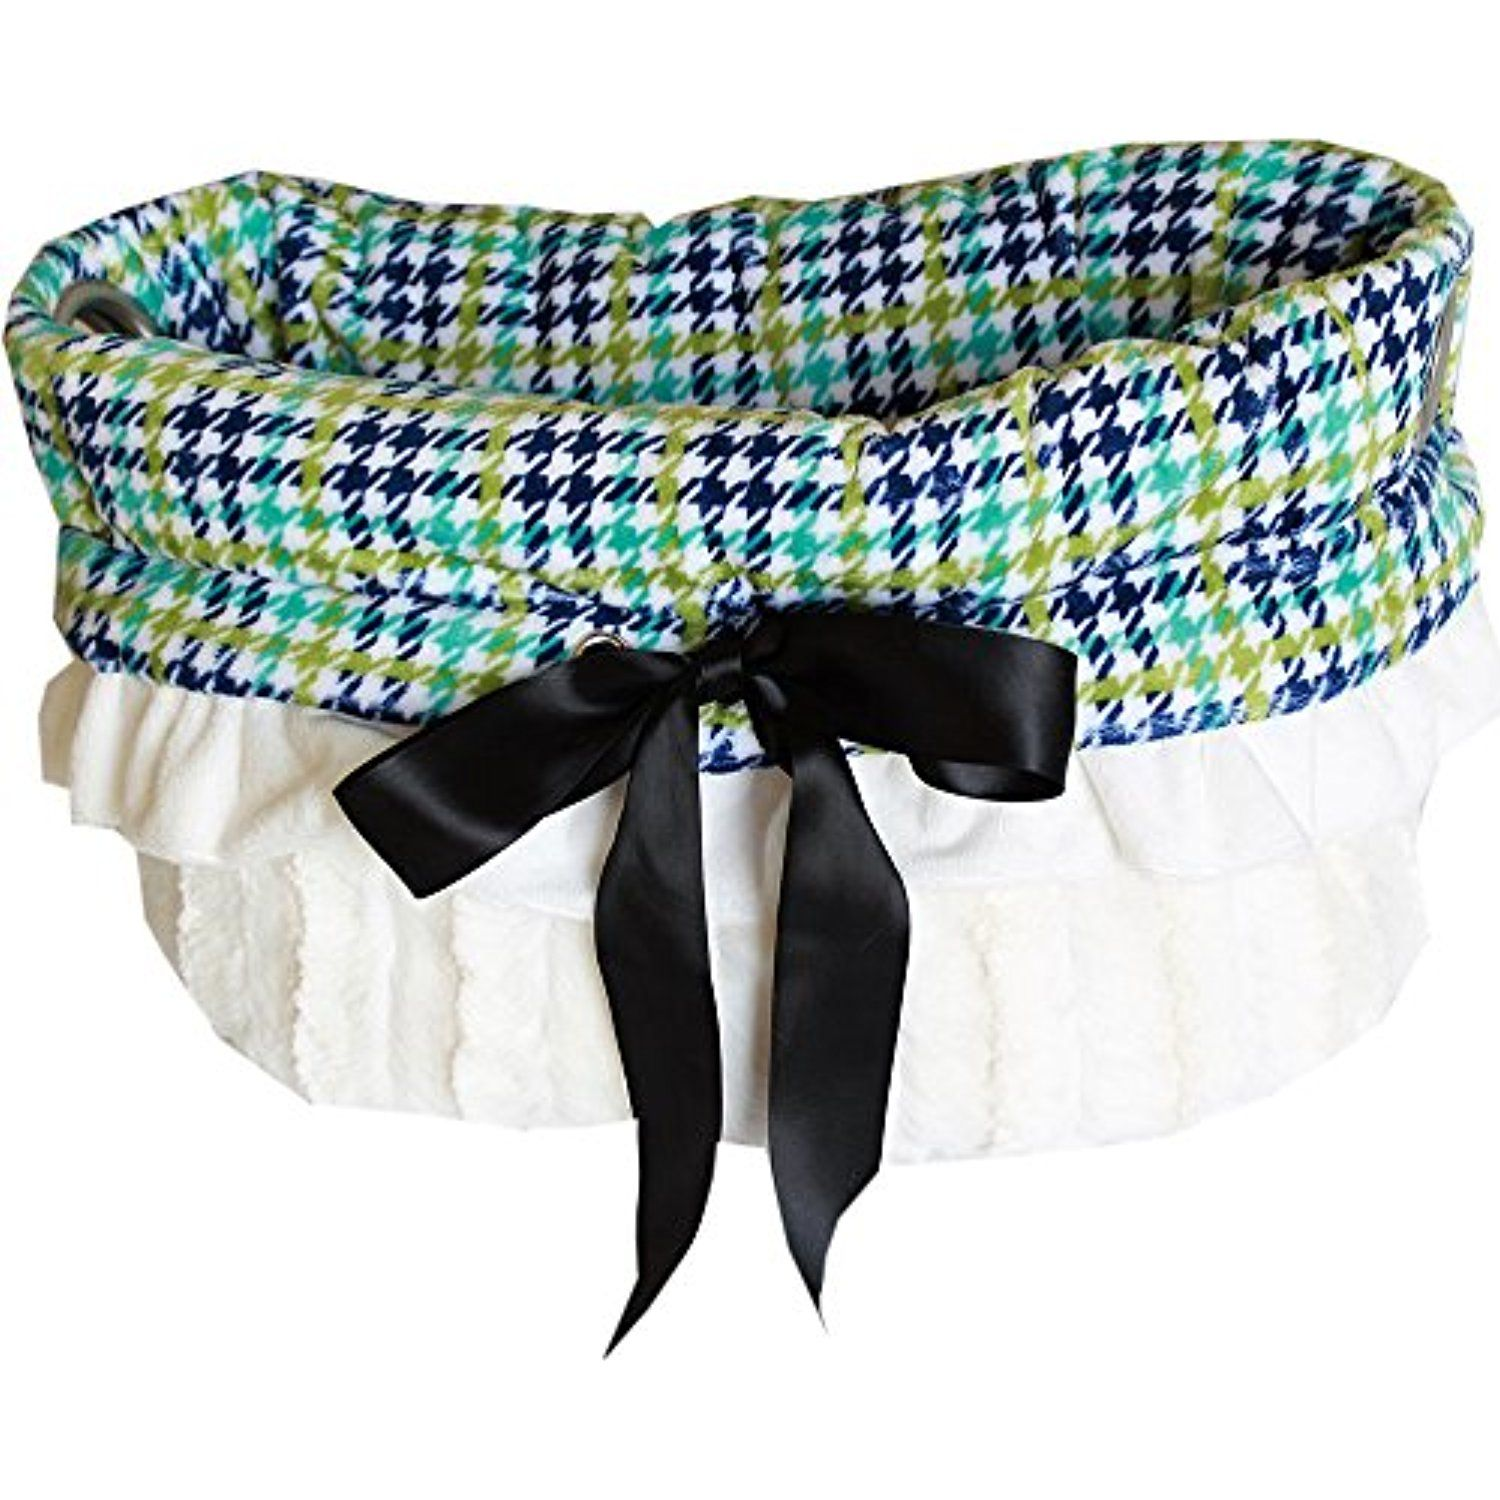 Snuggle Bug Reversible Dog Carrier/Bed (Aqua Plaid